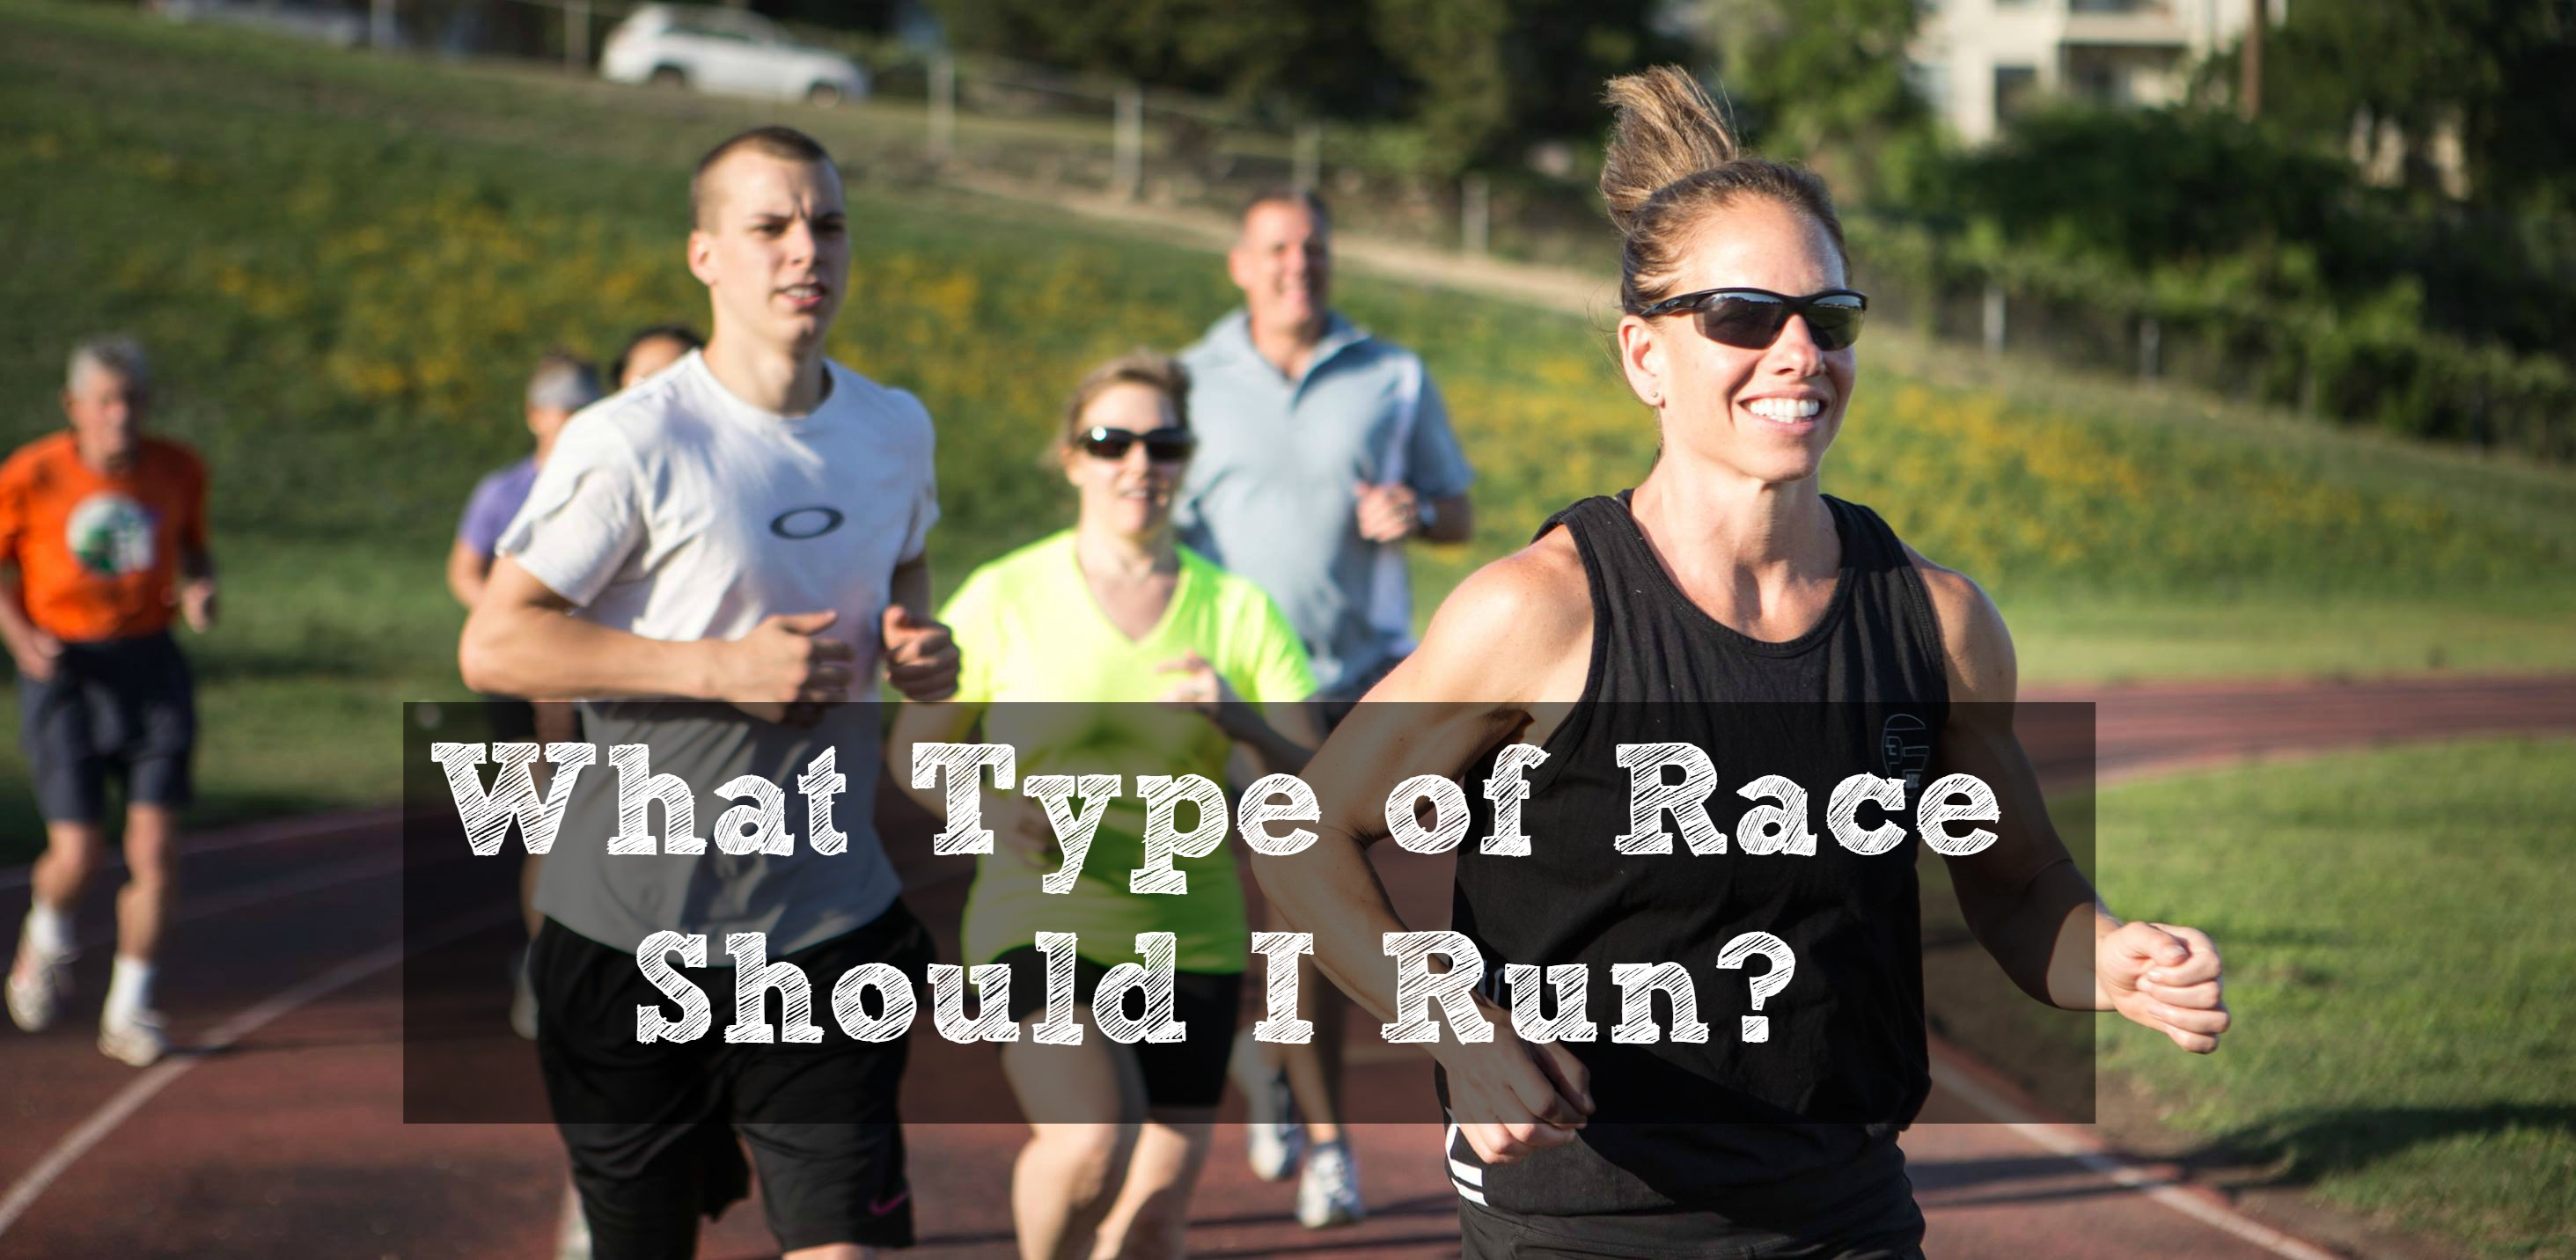 what type of race should I run